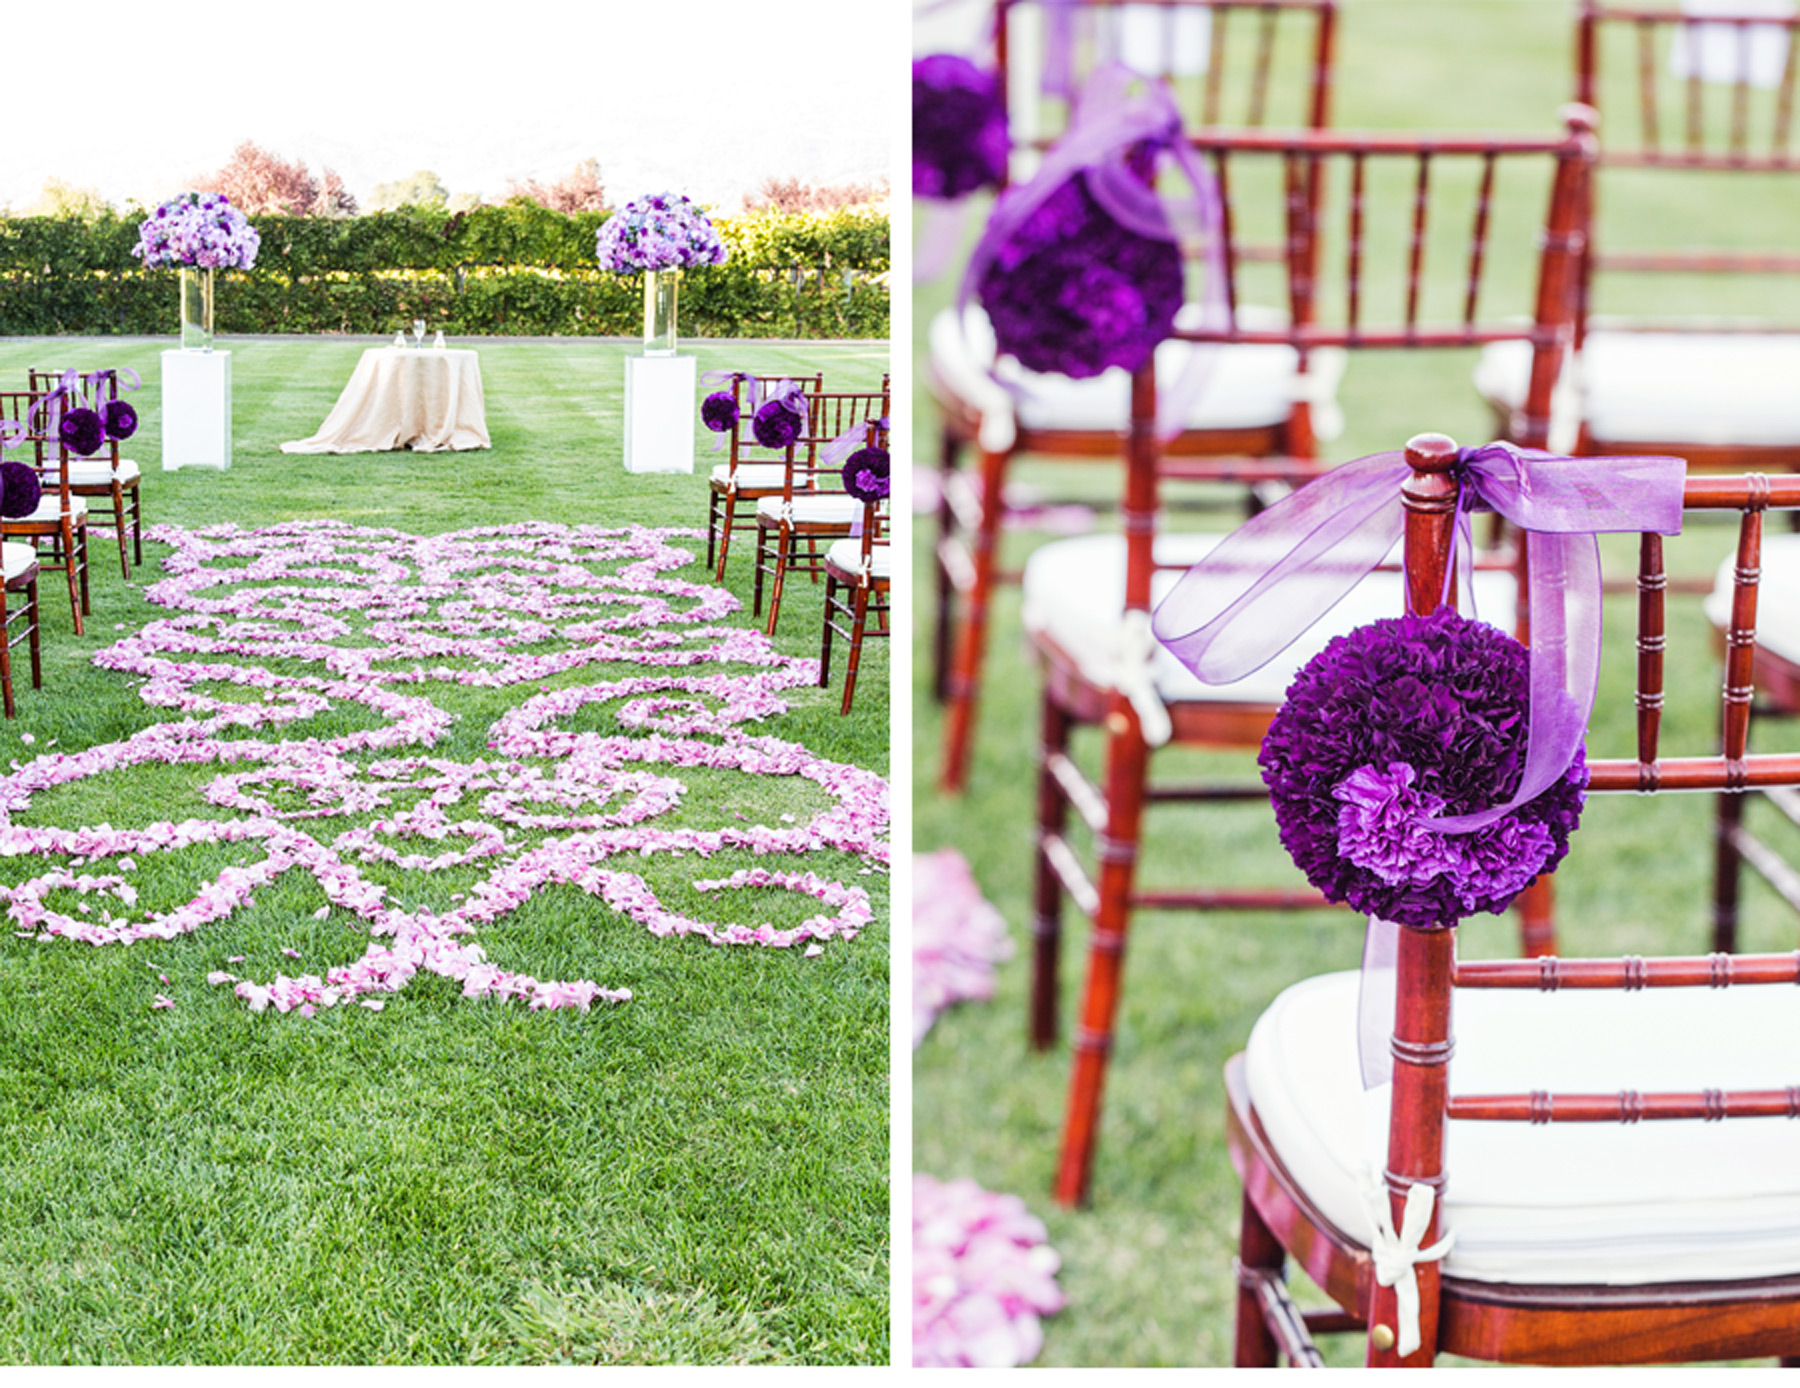 Our Muse - Vineyard Wedding in Napa, California - Be inspired by Lyn & Andrew's vineyard wedding in northern California - ceci new york, wedding, napa, california, purple, silver, destination wedding, ceremony, cole drake events